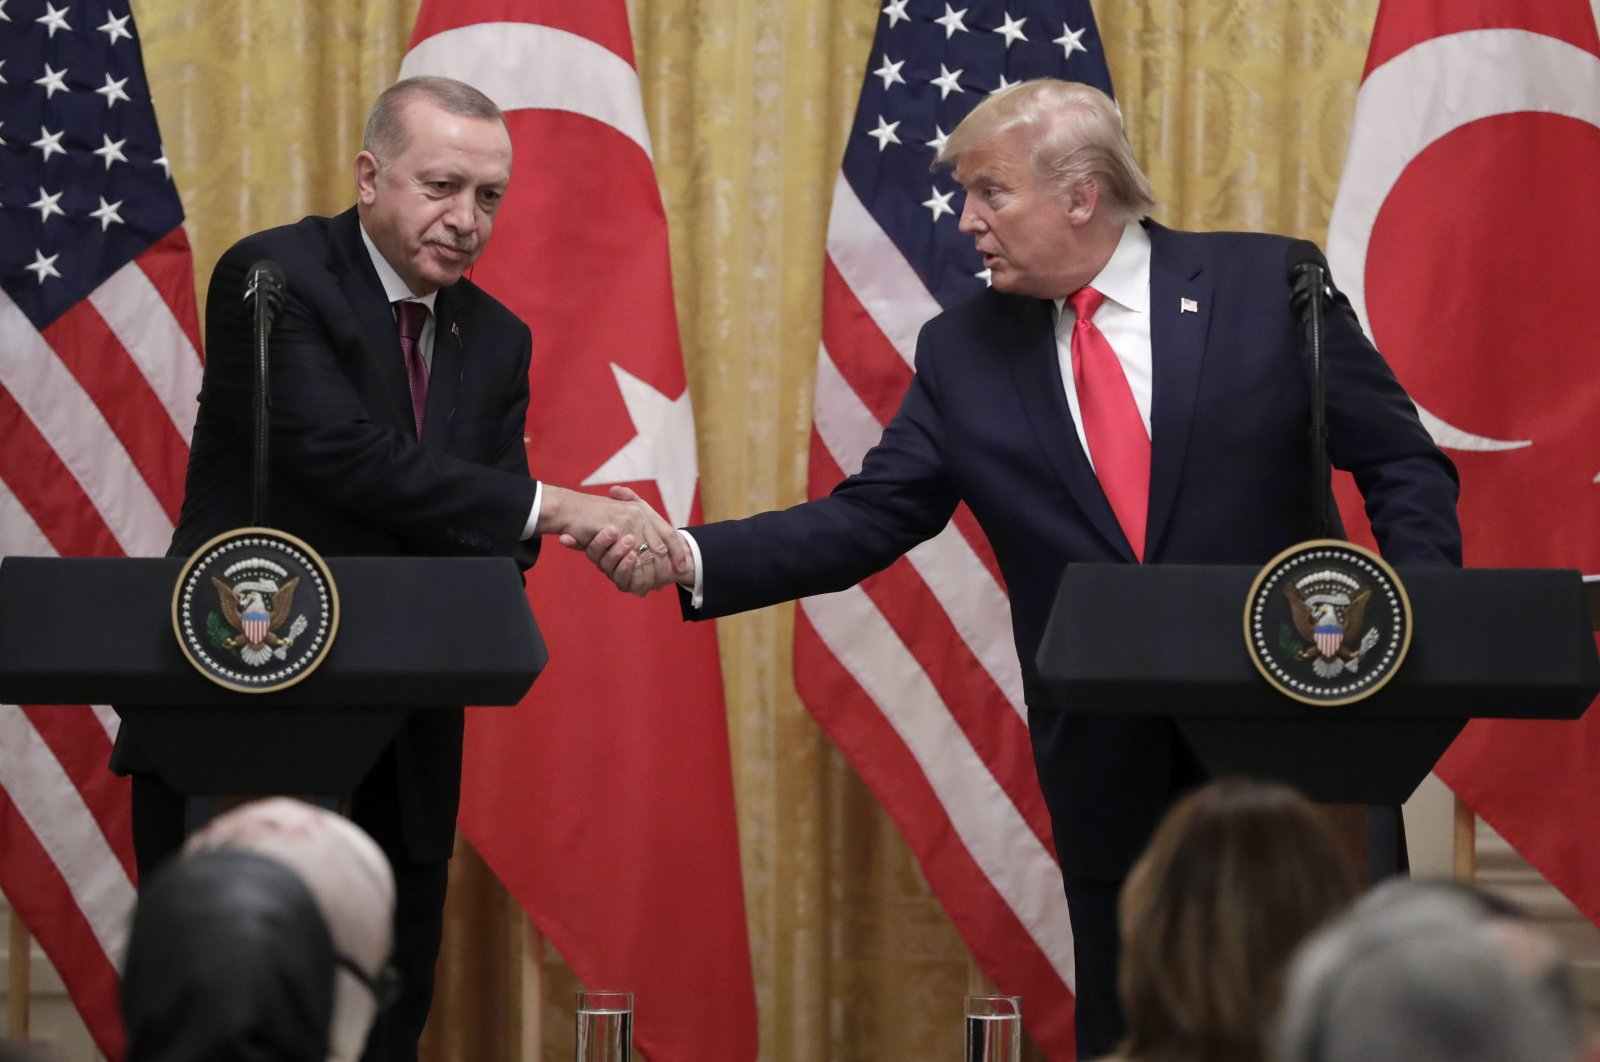 President Recep Tayyip Erdoğan (L) and U.S. President Donald Trump shake hands during a news conference in the East Room of the White House, Washington, Nov. 13, 2019. (AP Photo)